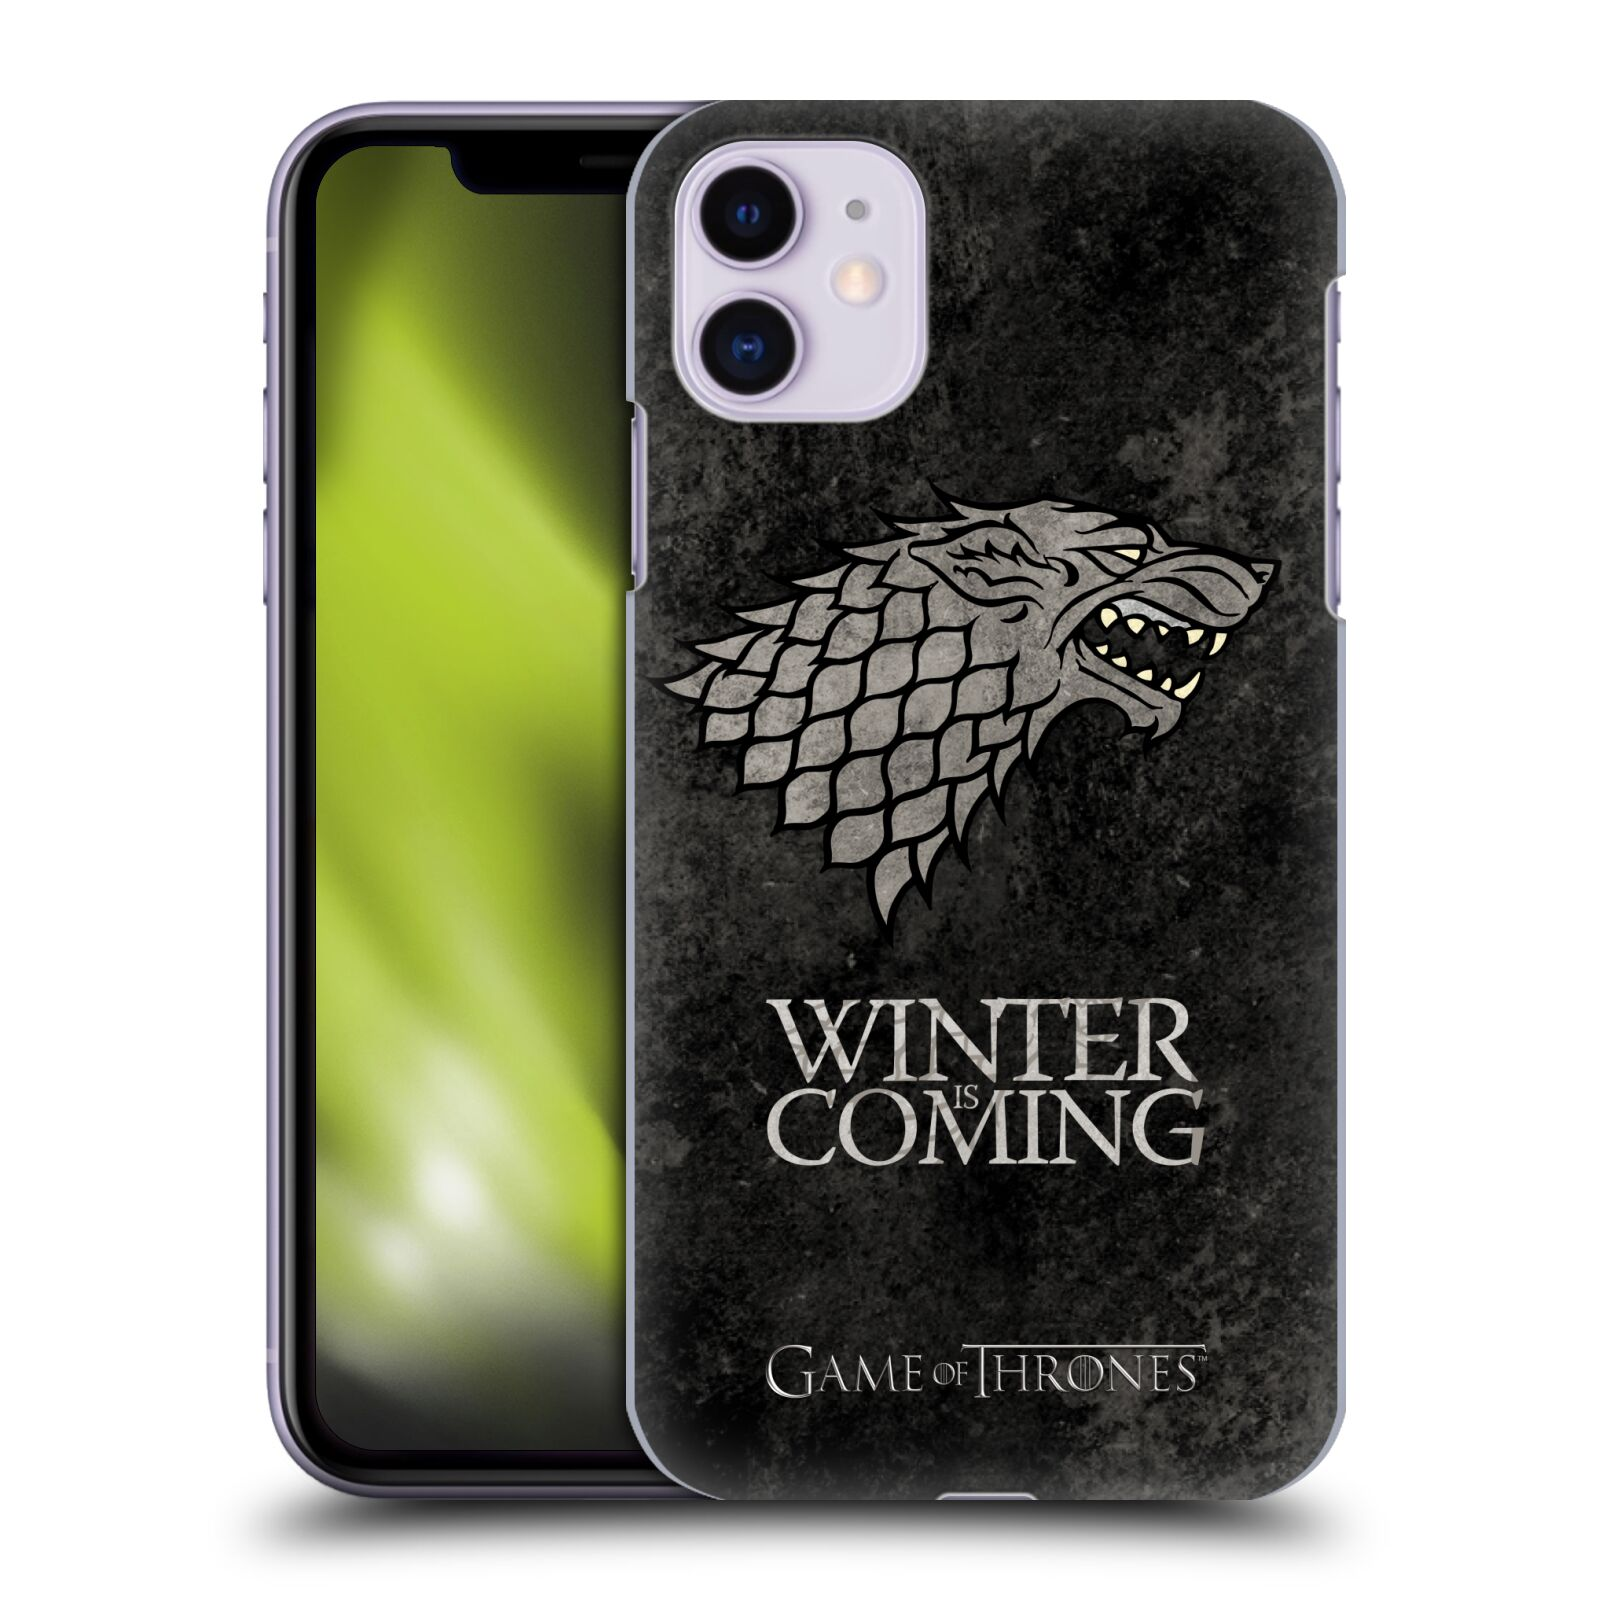 Plastové pouzdro na mobil Apple iPhone 11 - Head Case - Hra o trůny - Stark - Winter is coming